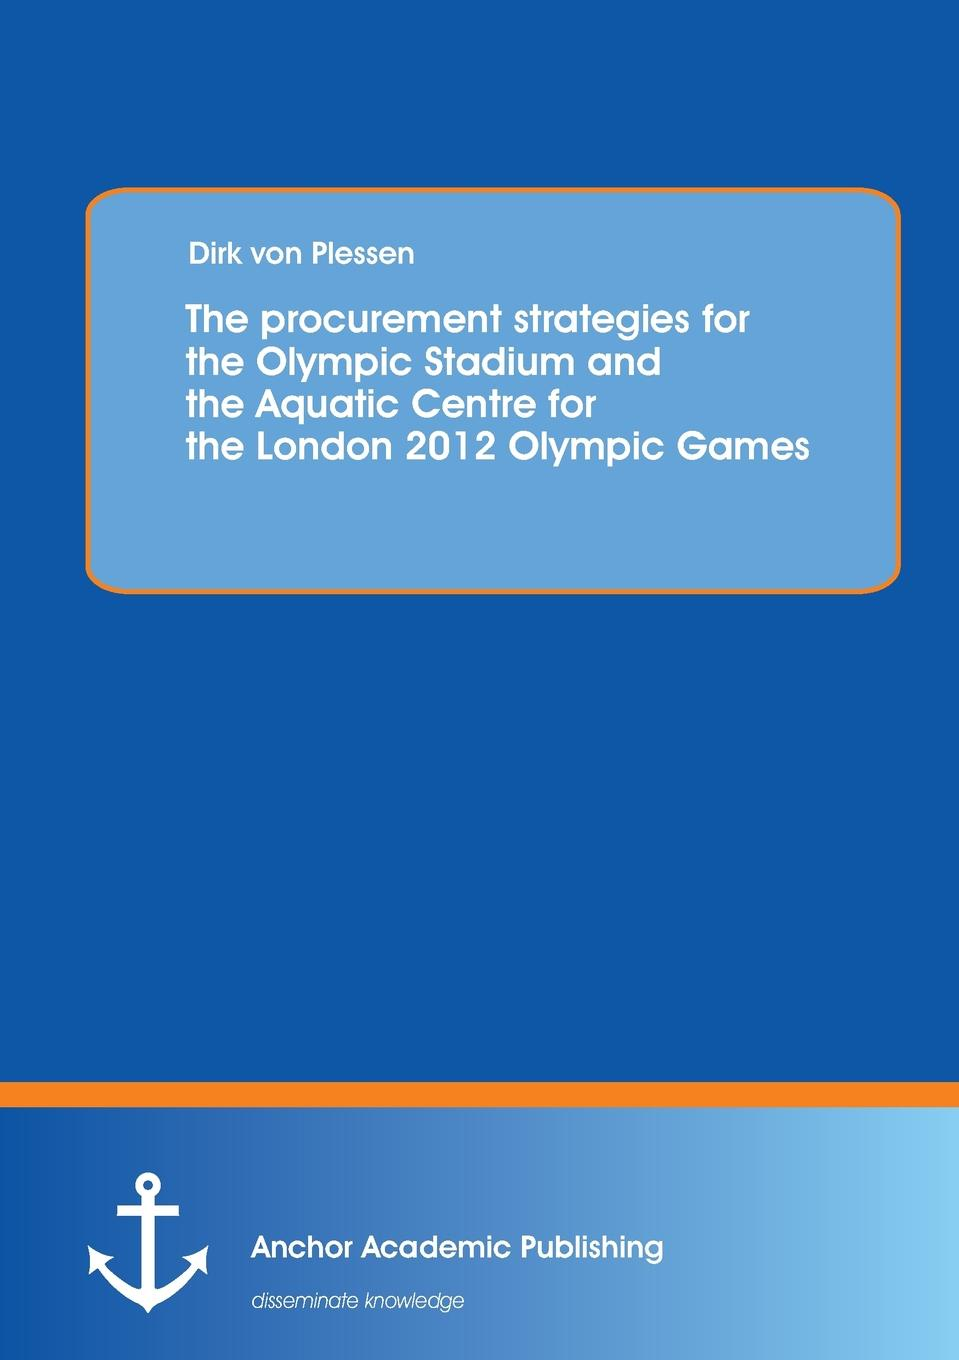 Dirk von Plessen The procurement strategies for the Olympic Stadium and the Aquatic Centre for the London 2012 Olympic Games malcolm kemp extreme events robust portfolio construction in the presence of fat tails isbn 9780470976791